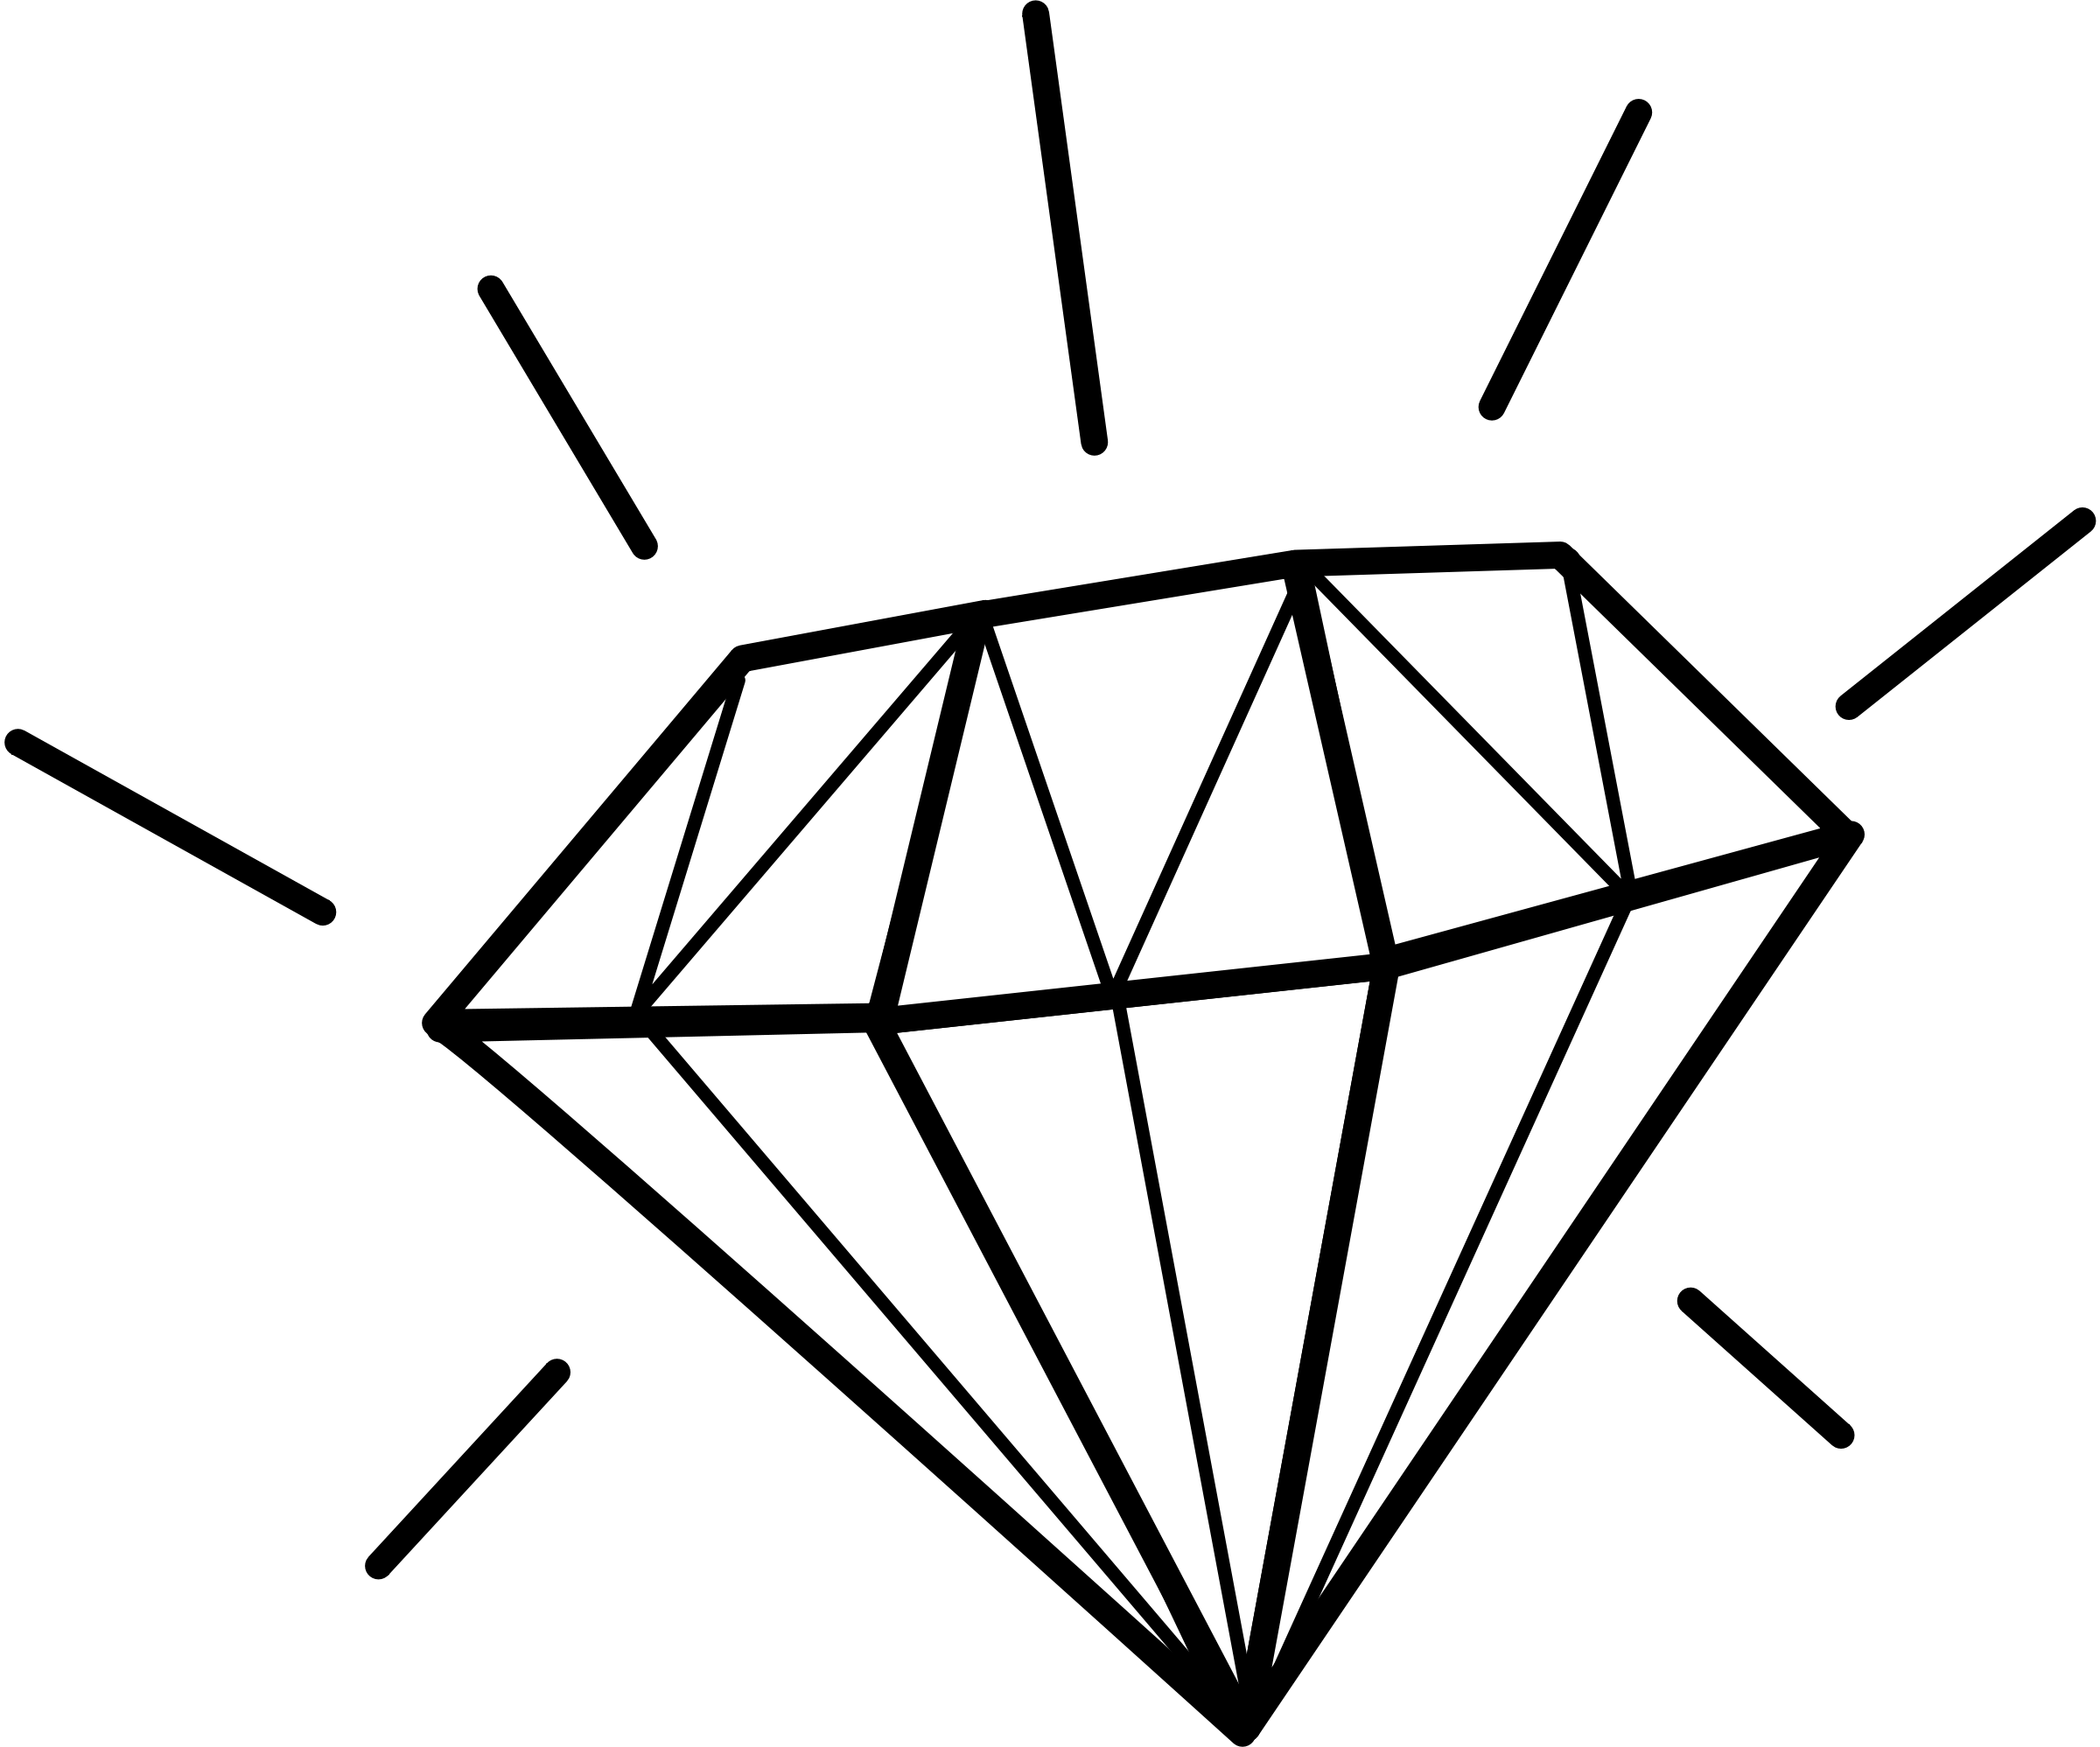 Free Diamond Clipart Transparent Background, Download Free.